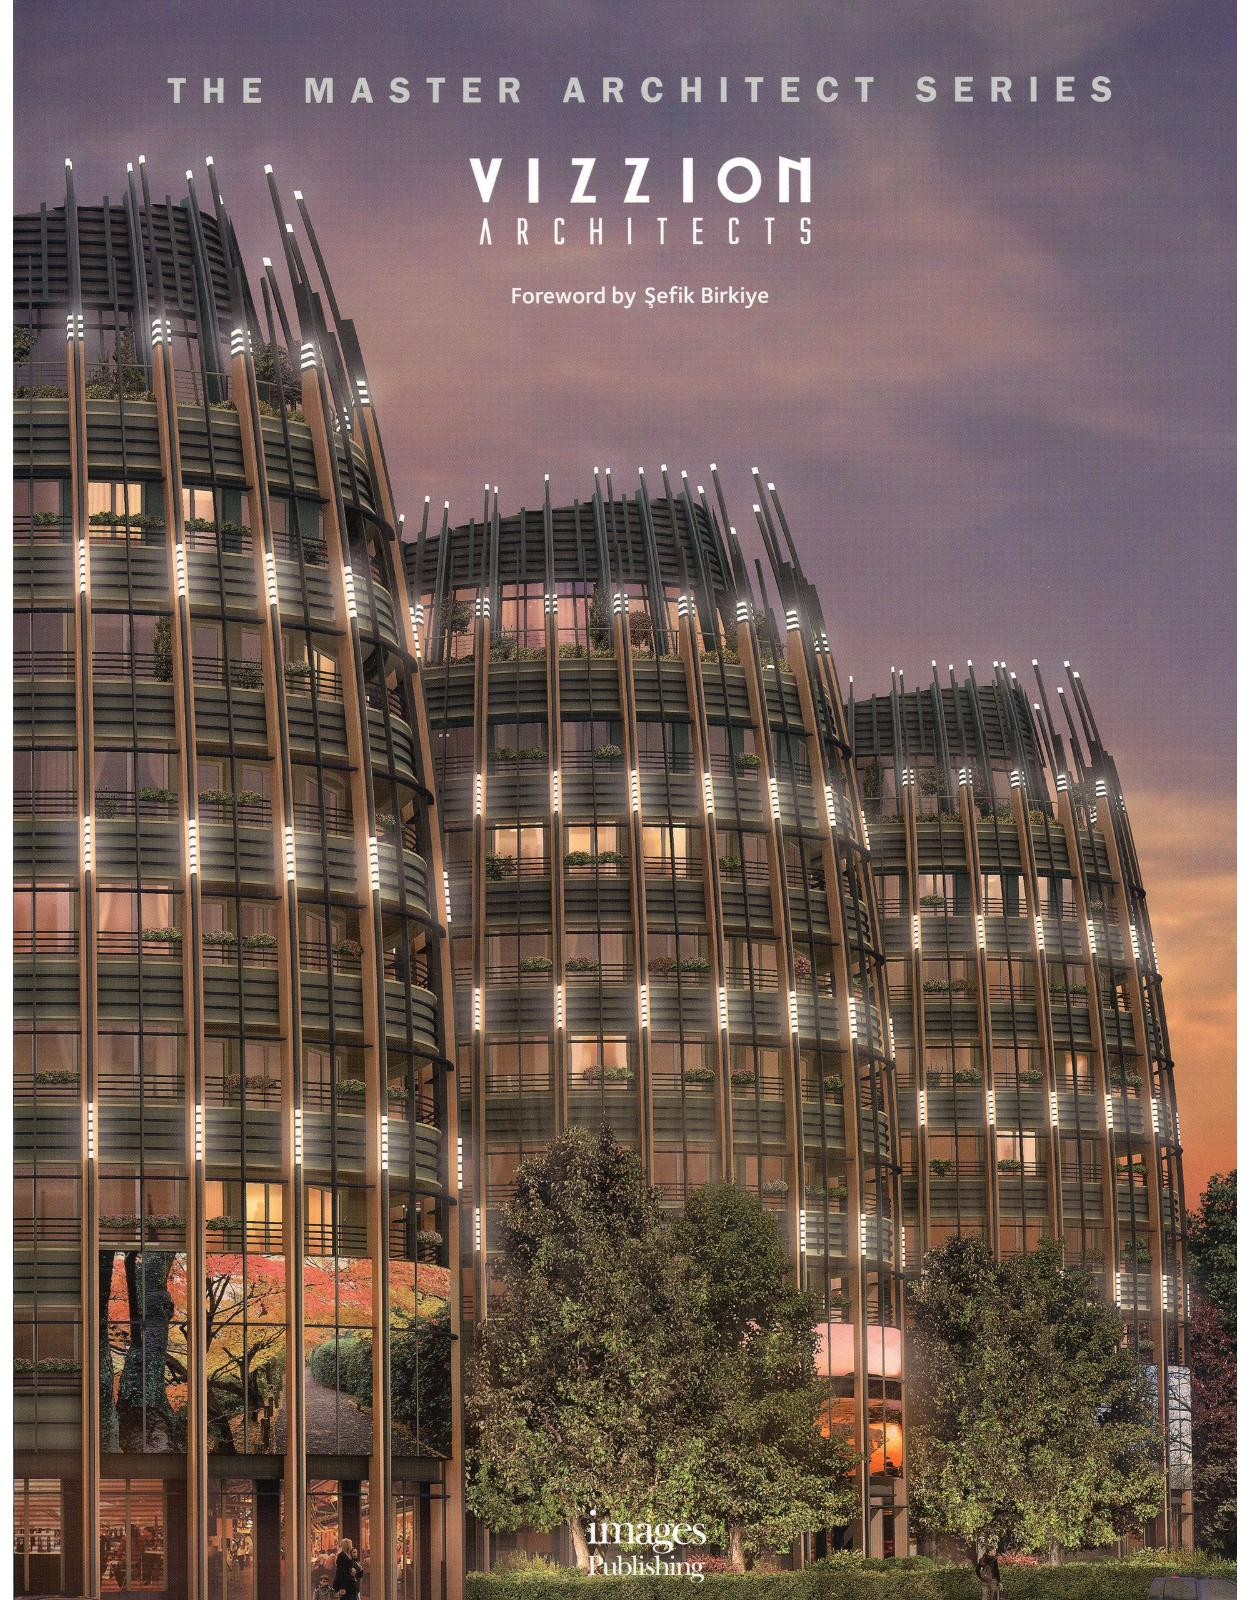 Vizzion Architects (Master Architect Series)